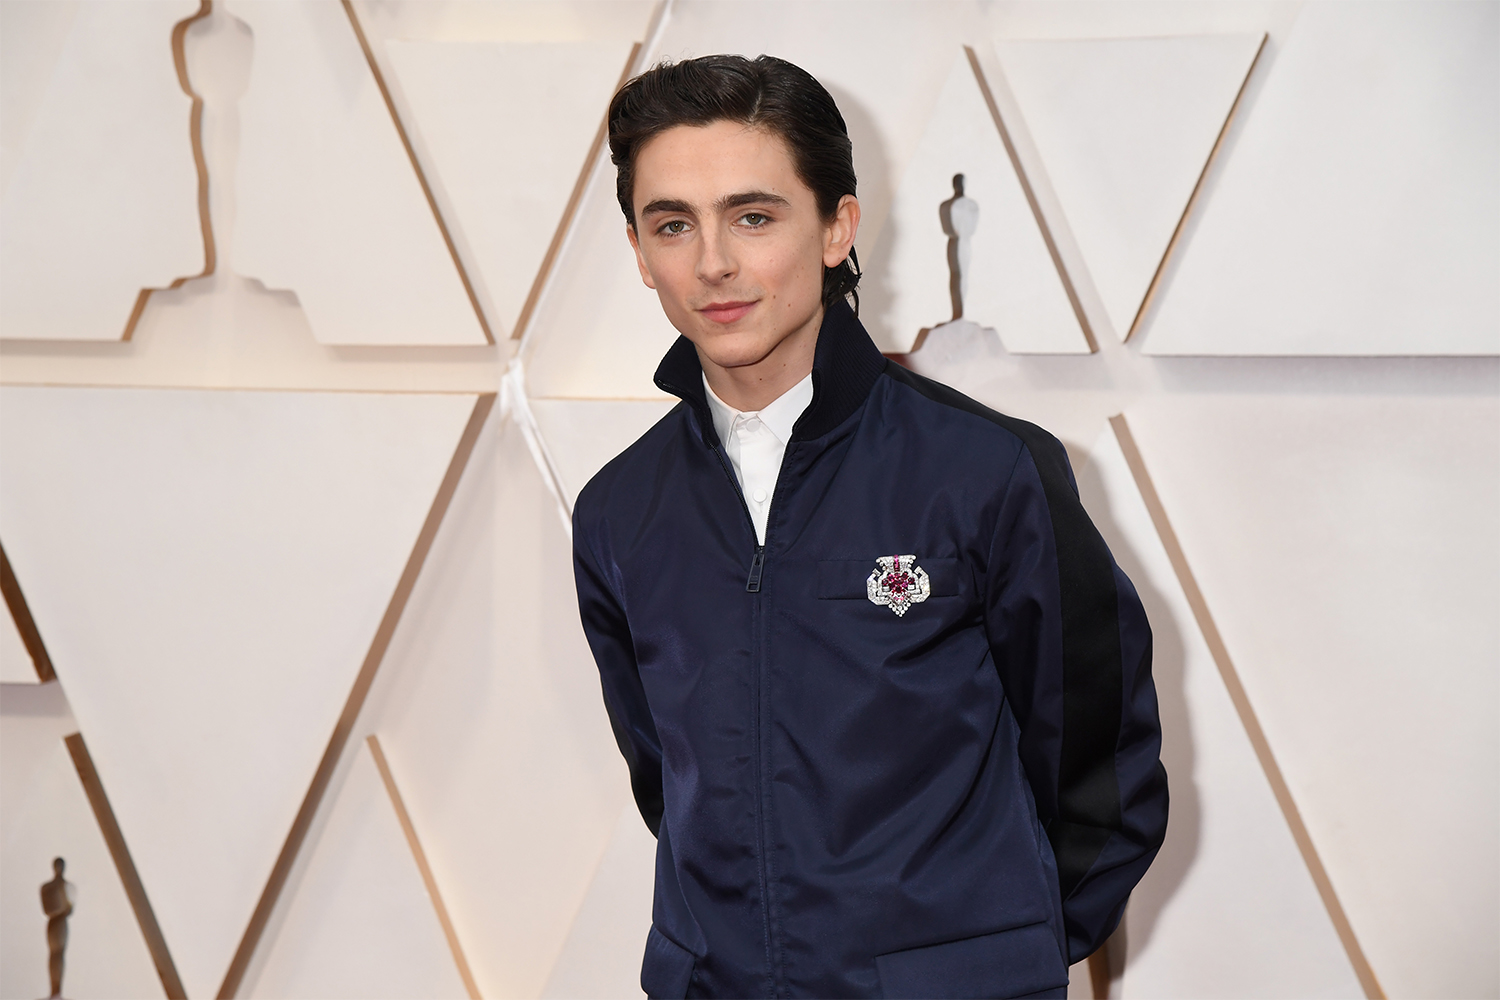 What Exactly Was Timothée Chalamet Wearing at the Oscars?